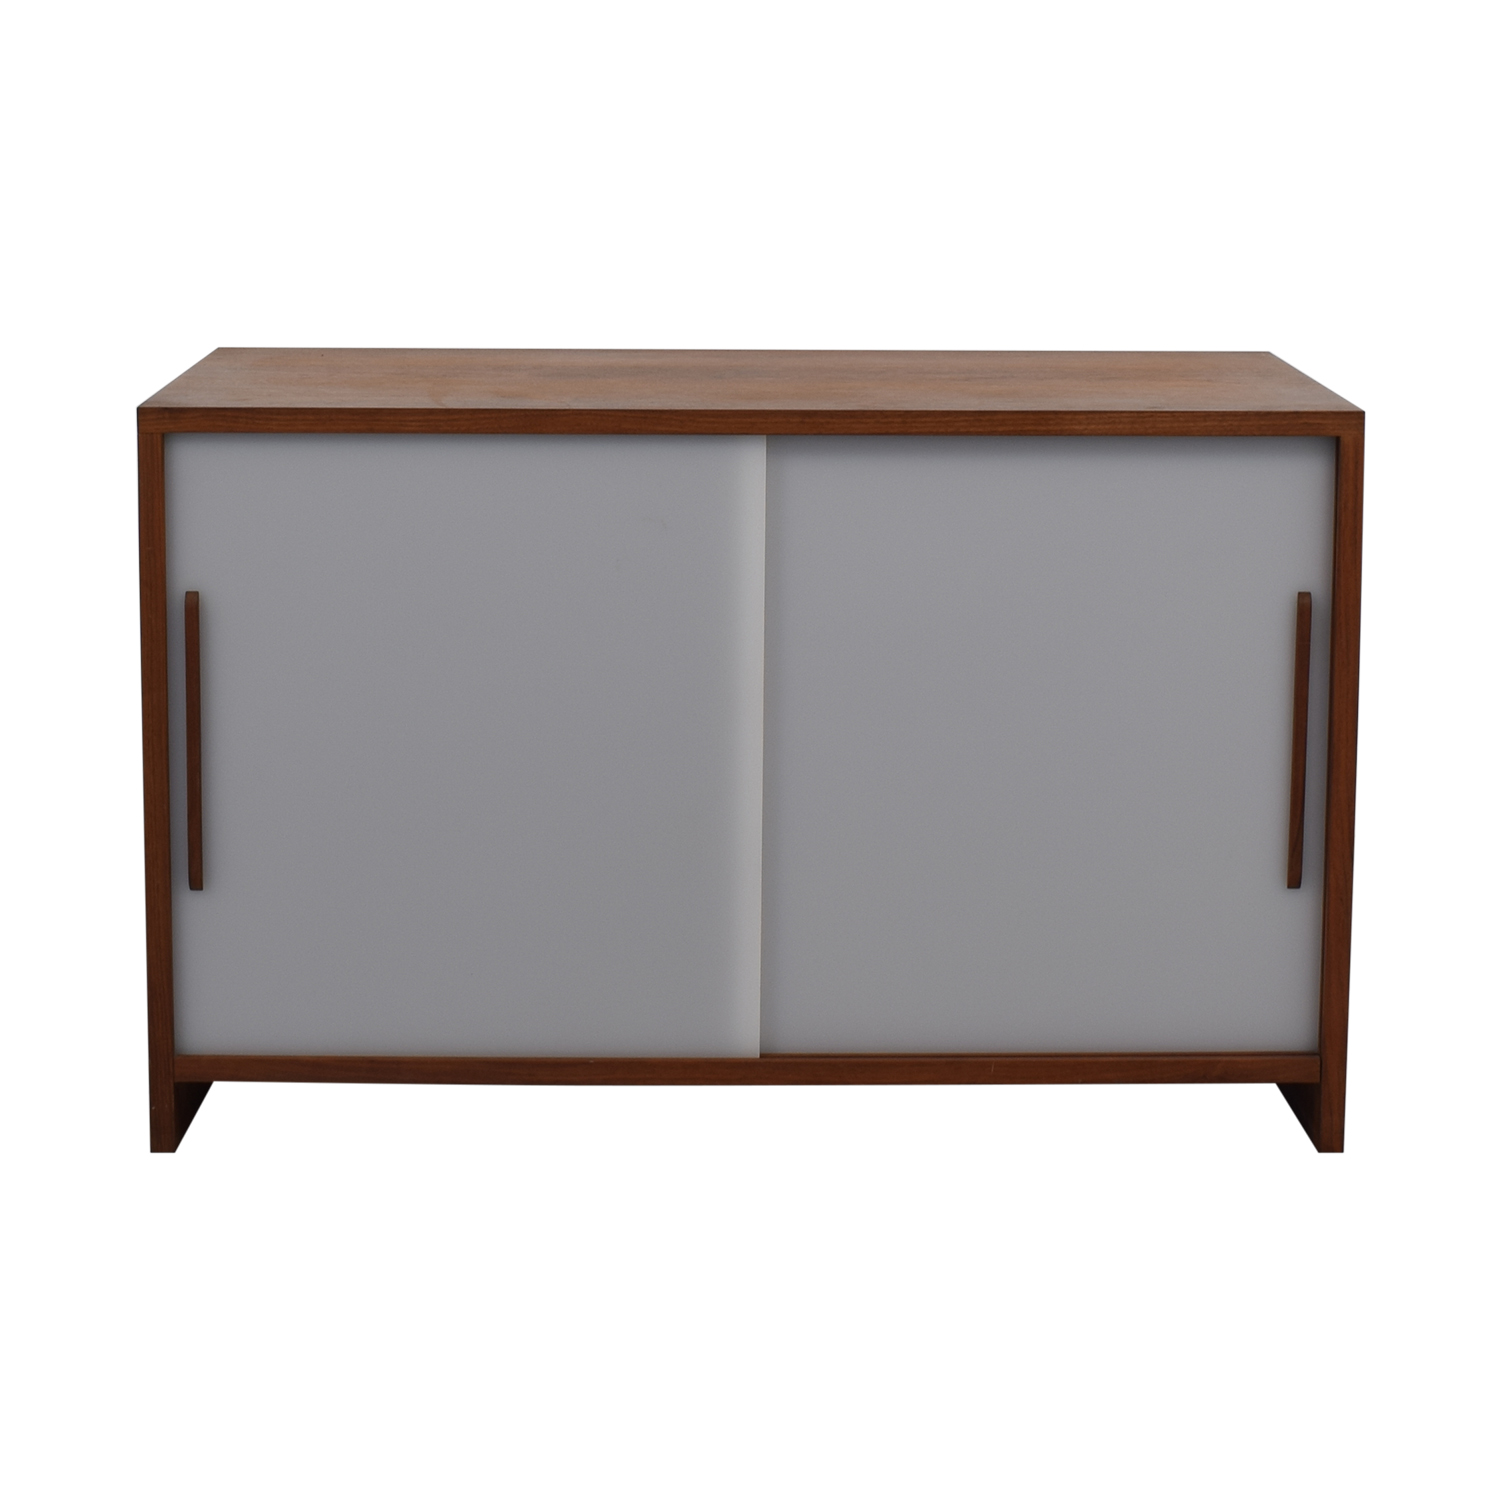 Custom Solid Walnut Cabinet with Sliding Plexiglass Doors and Walnut Handles nyc